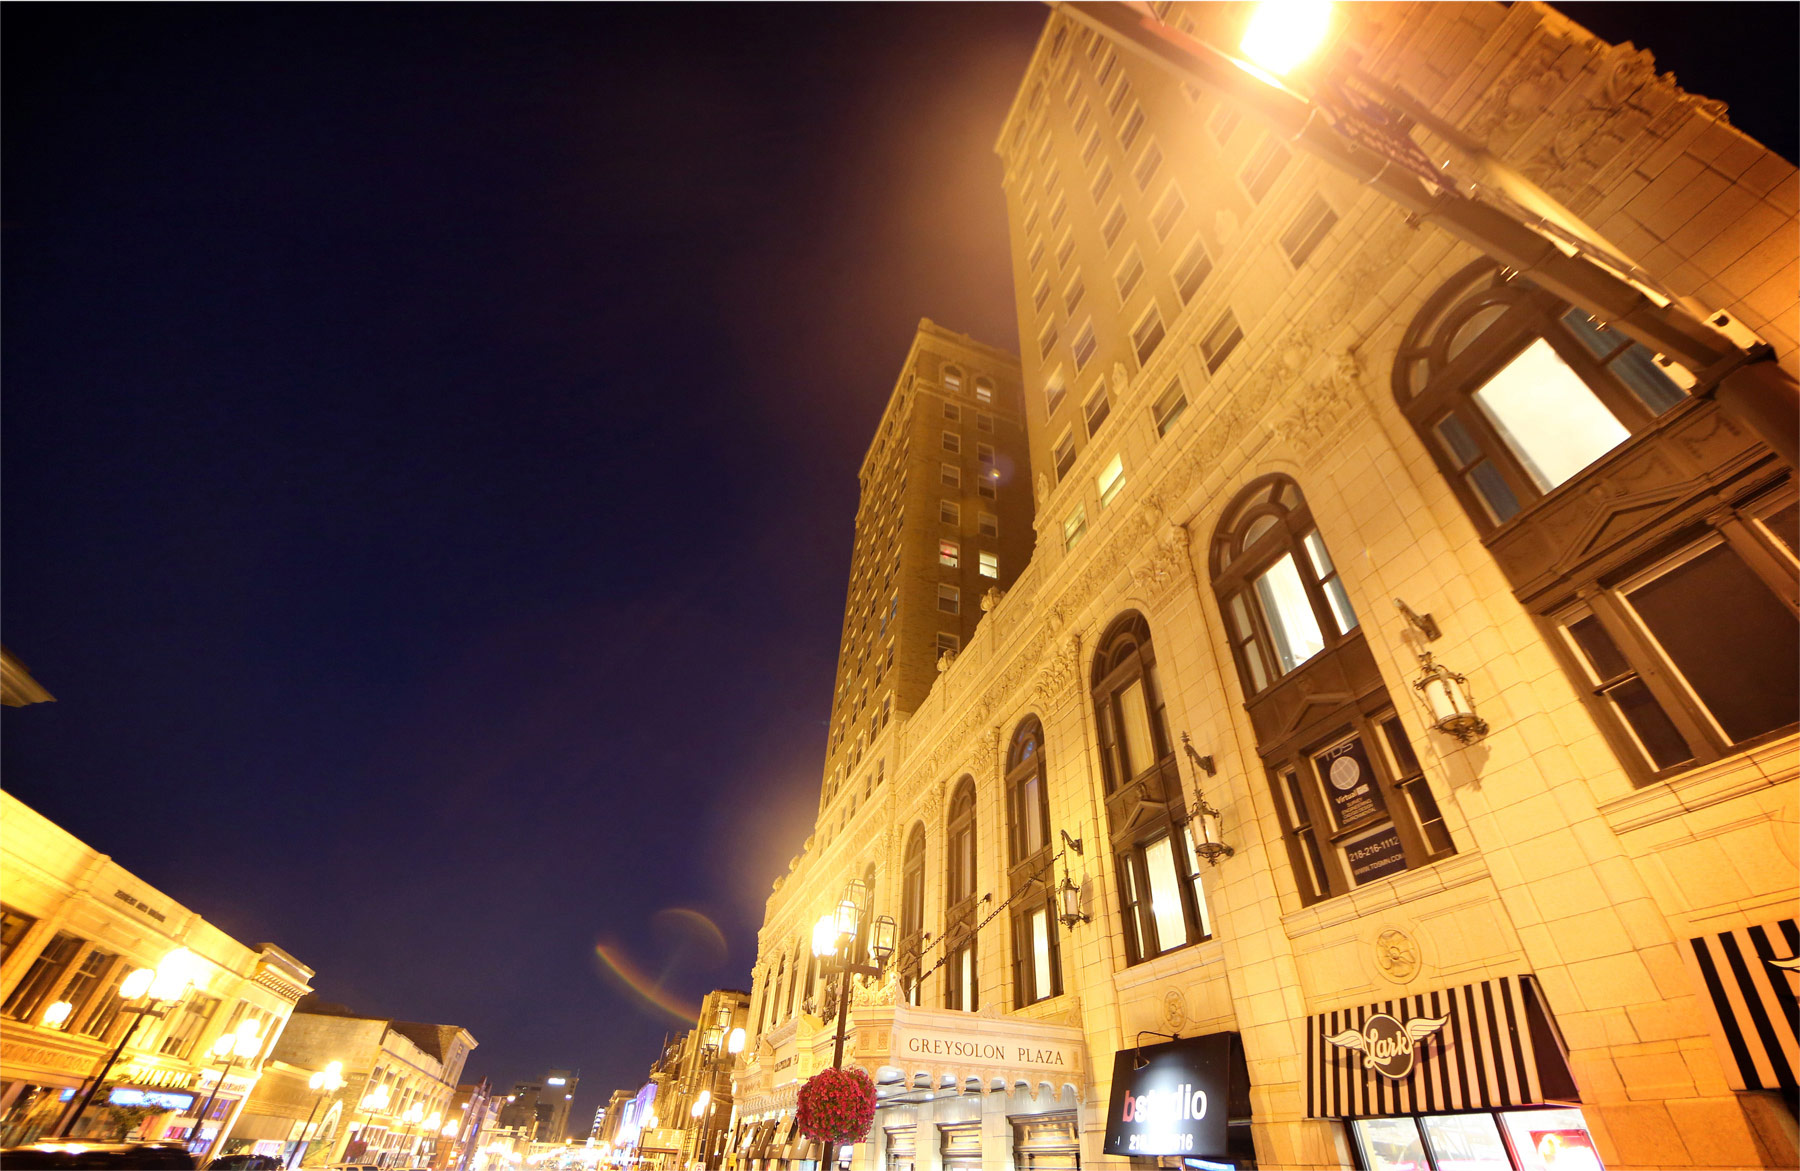 23-Duluth-Minnesota-Wedding-Photographer-by-Andrew-Vick-Photography-Summer-Greysolon-Ballroom-Outside-Street-View-Building-Night-Lindsey-and-Adam.jpg